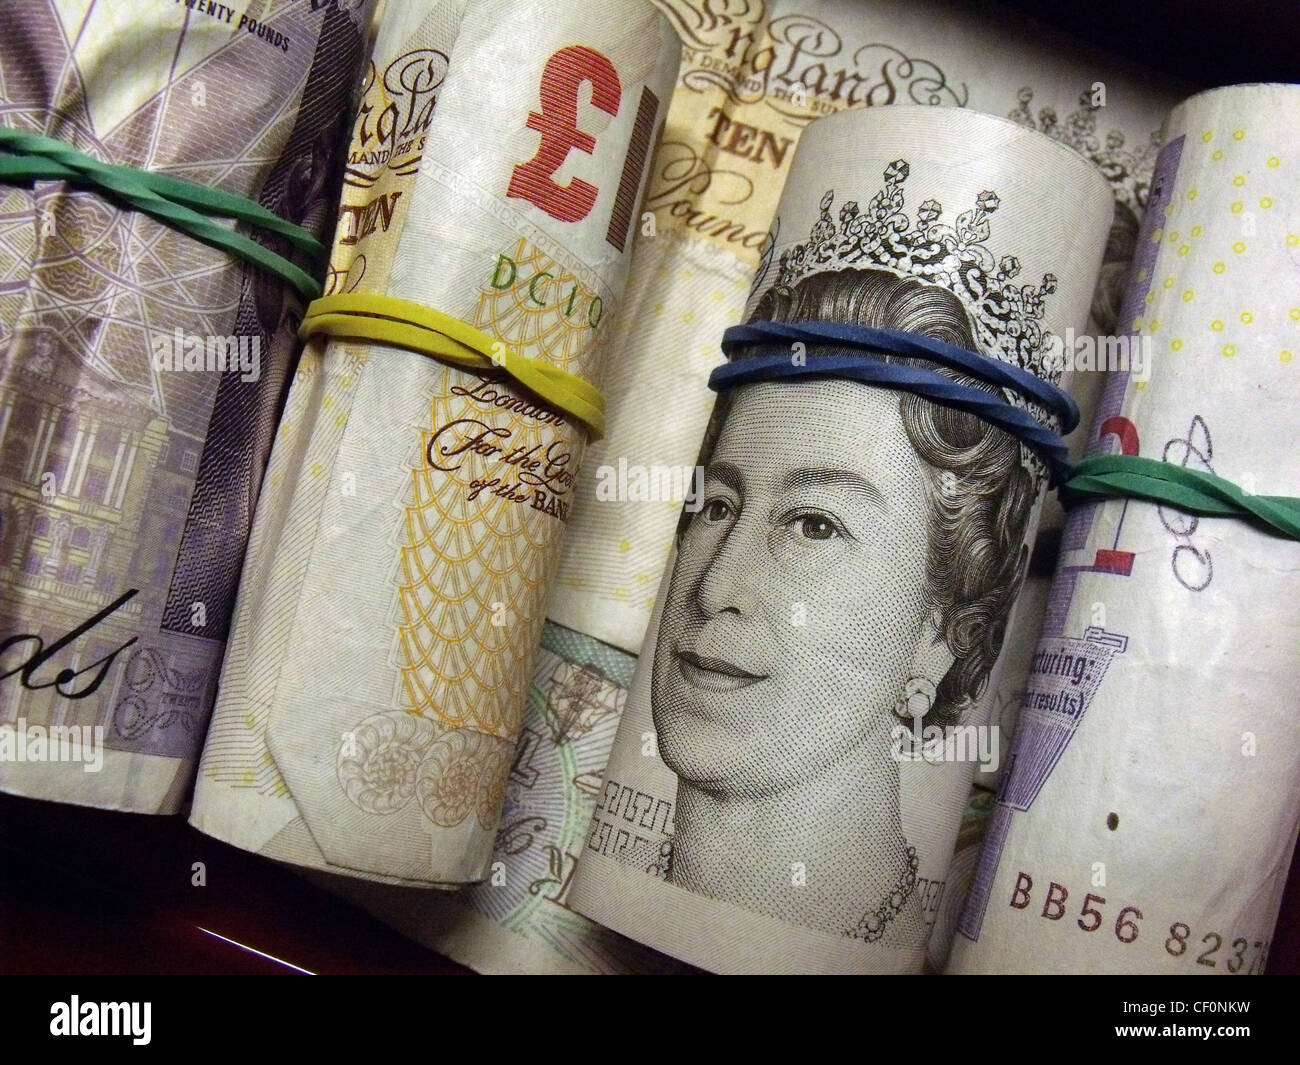 pounds,gotonysmith,queen,Elizabeth,of,England,bank,smile,note,money,notes,english,Britain,UK,Europe,close,up,mixture,black,economy,pay,paying,by,cash,£10,£20,used,ten,twenty,rolled,dosh,wonga,greenback,greenbacks,elastic,bands,rubber,gotonysmith,Buy Pictures of,Buy Images Of